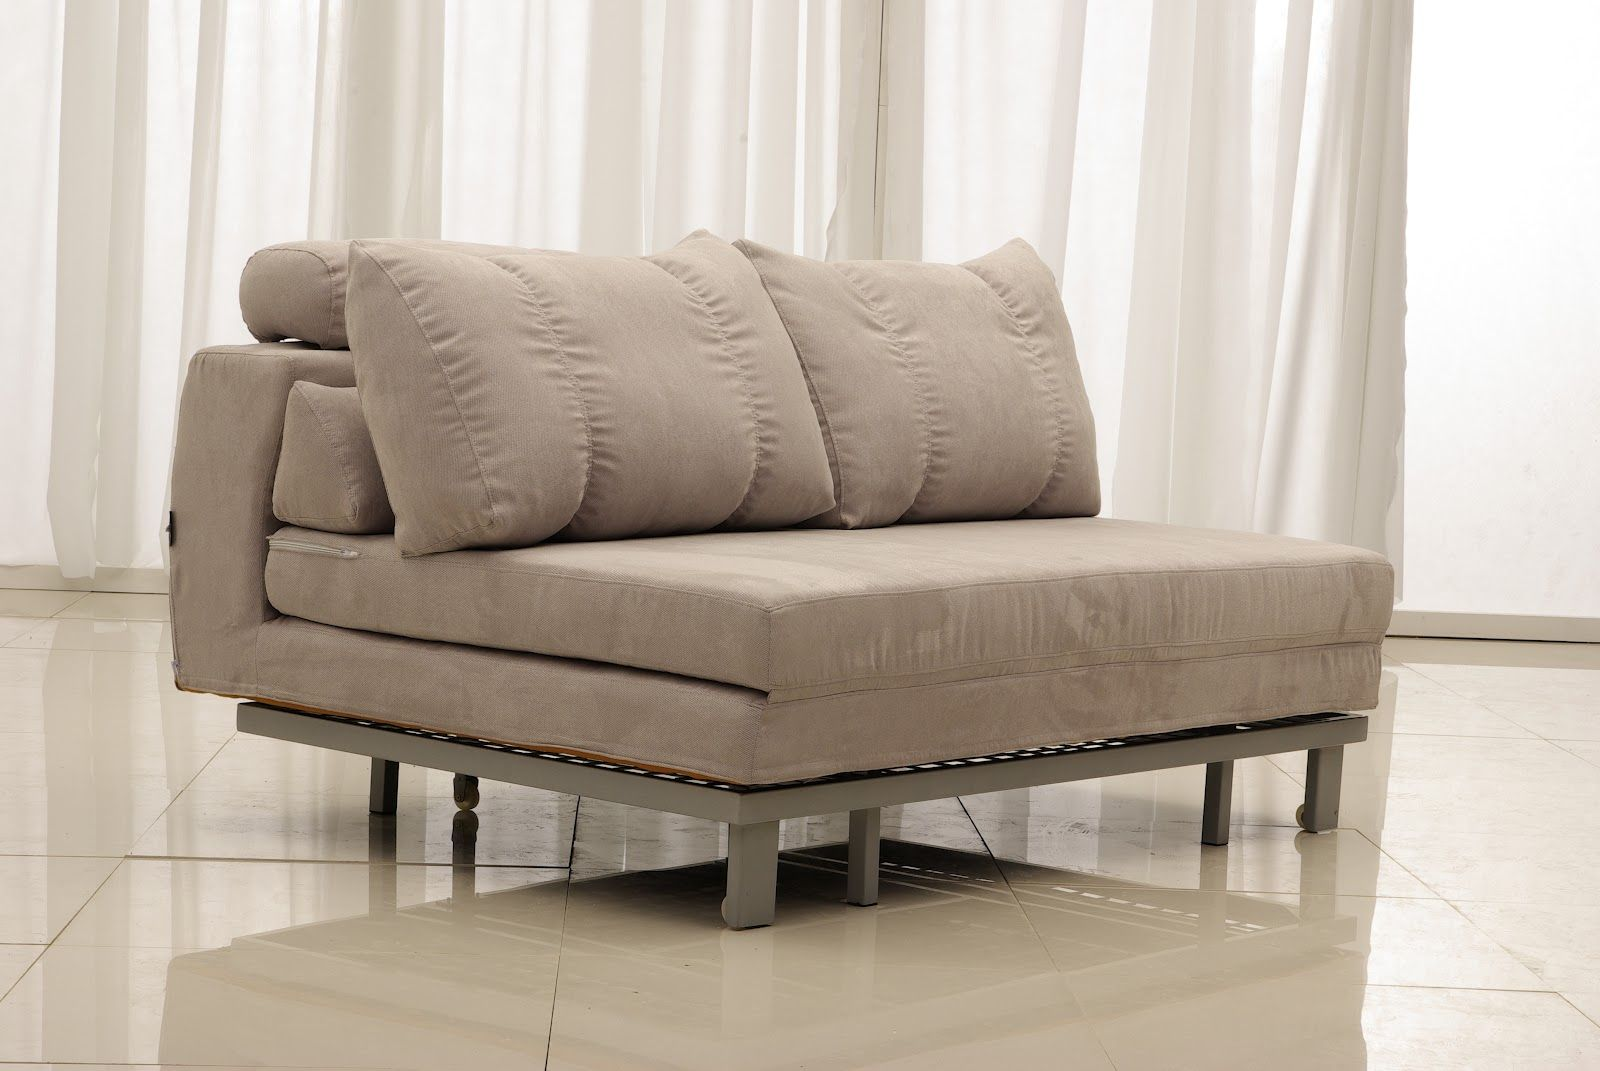 comfortable chairs for living room. Modren Room Resemblance Of Comfortable Chairs For Living Room Intended For